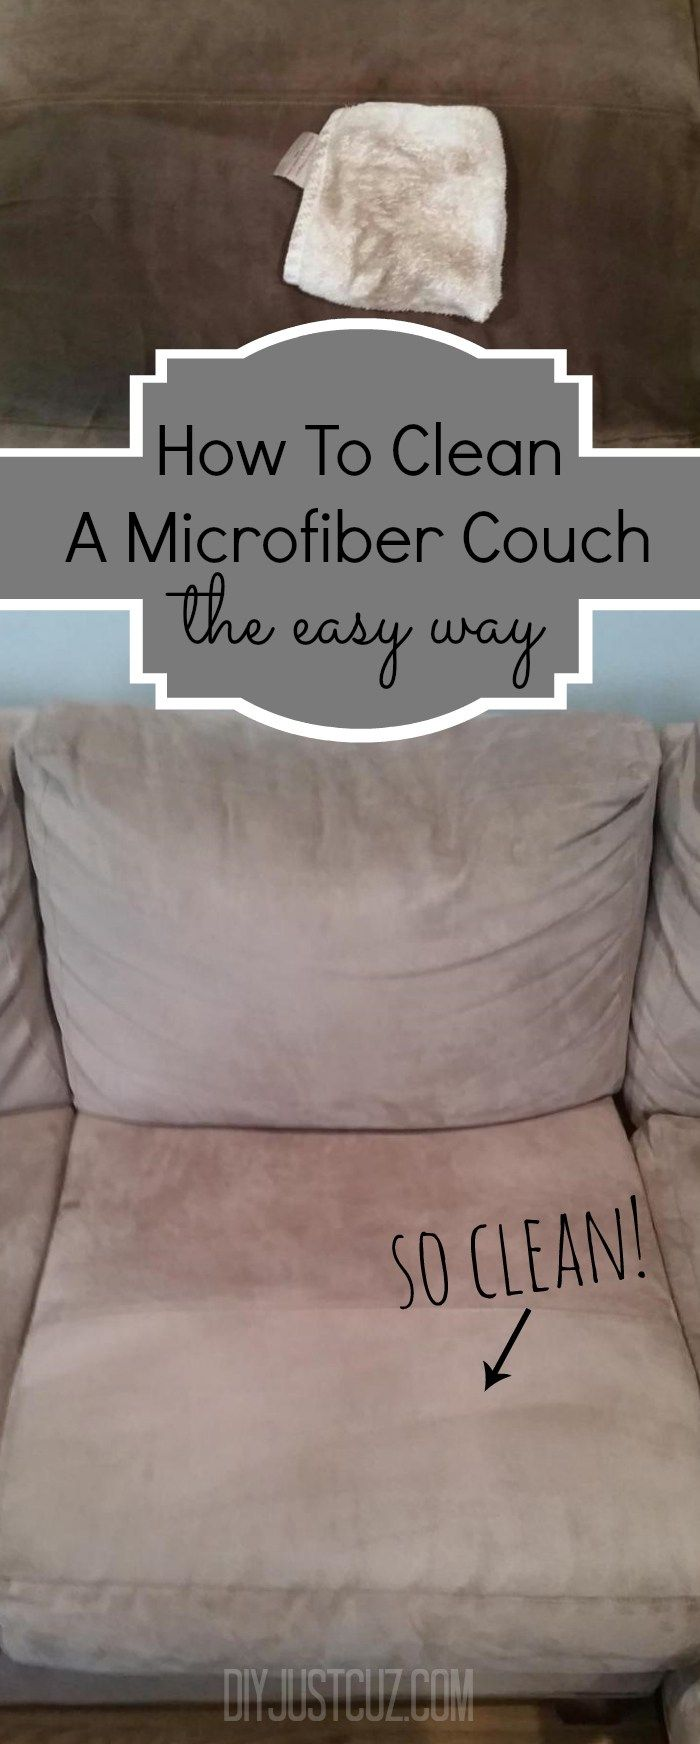 The Best Thing About A Microfiber Couch Is How Easily They Can Be Cleaned Read